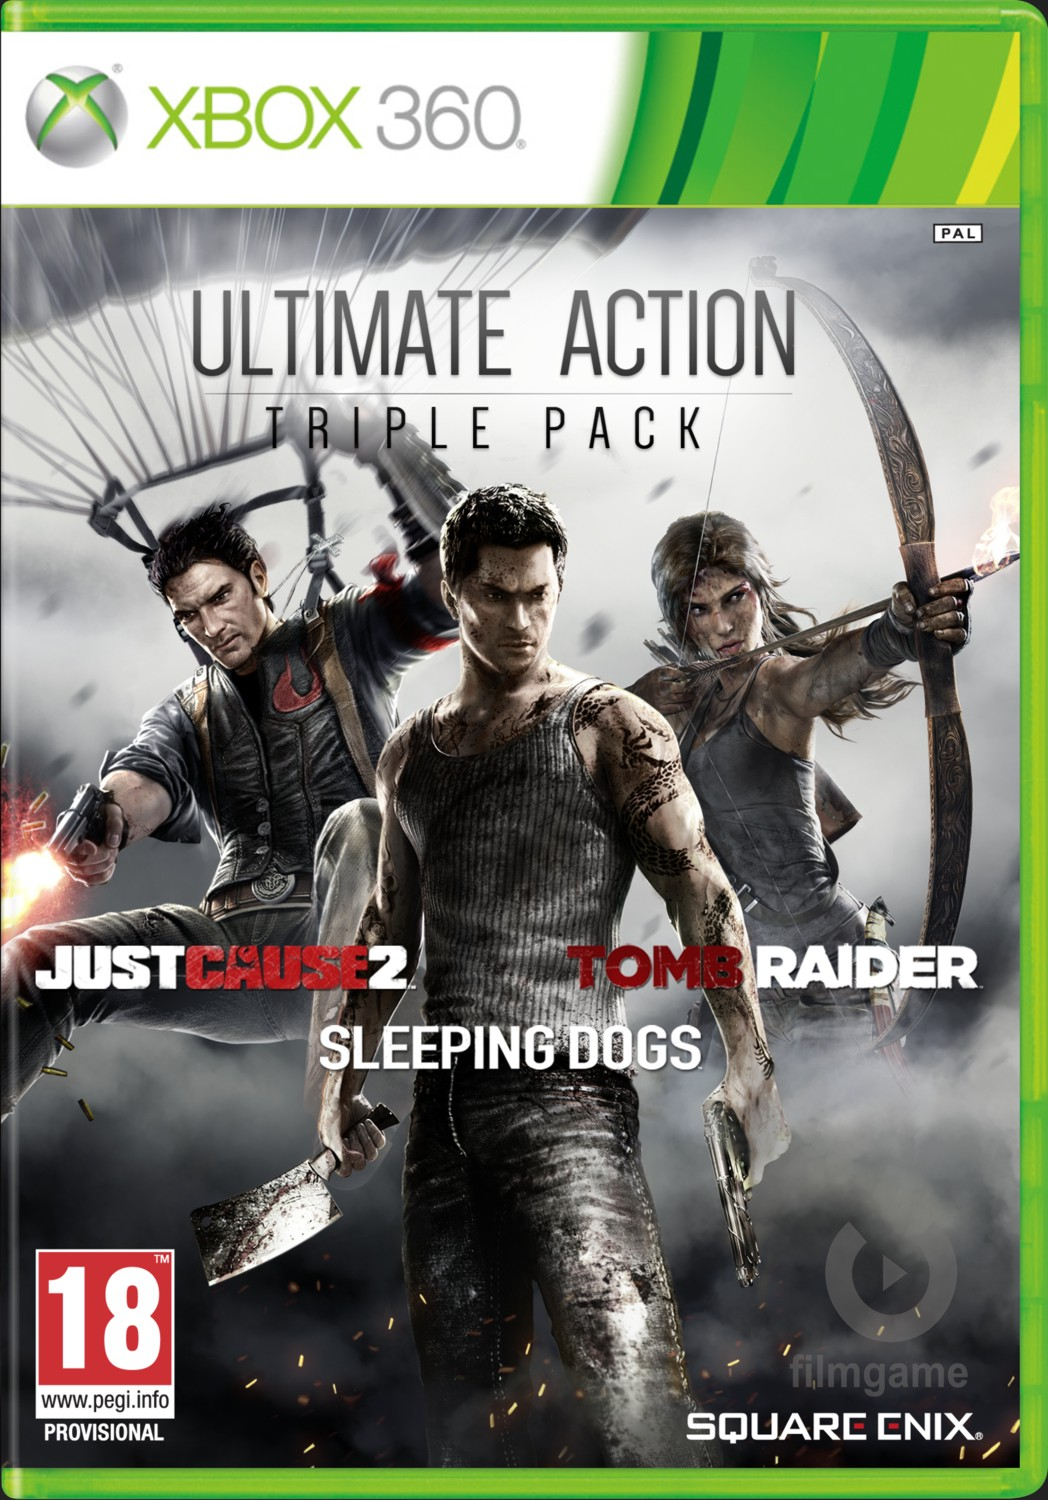 ULTIMATE ACTION TRIPLE PACK (JUST CAUSE 2 + SLEEPING DOGS + TOMB RAIDER) - X360